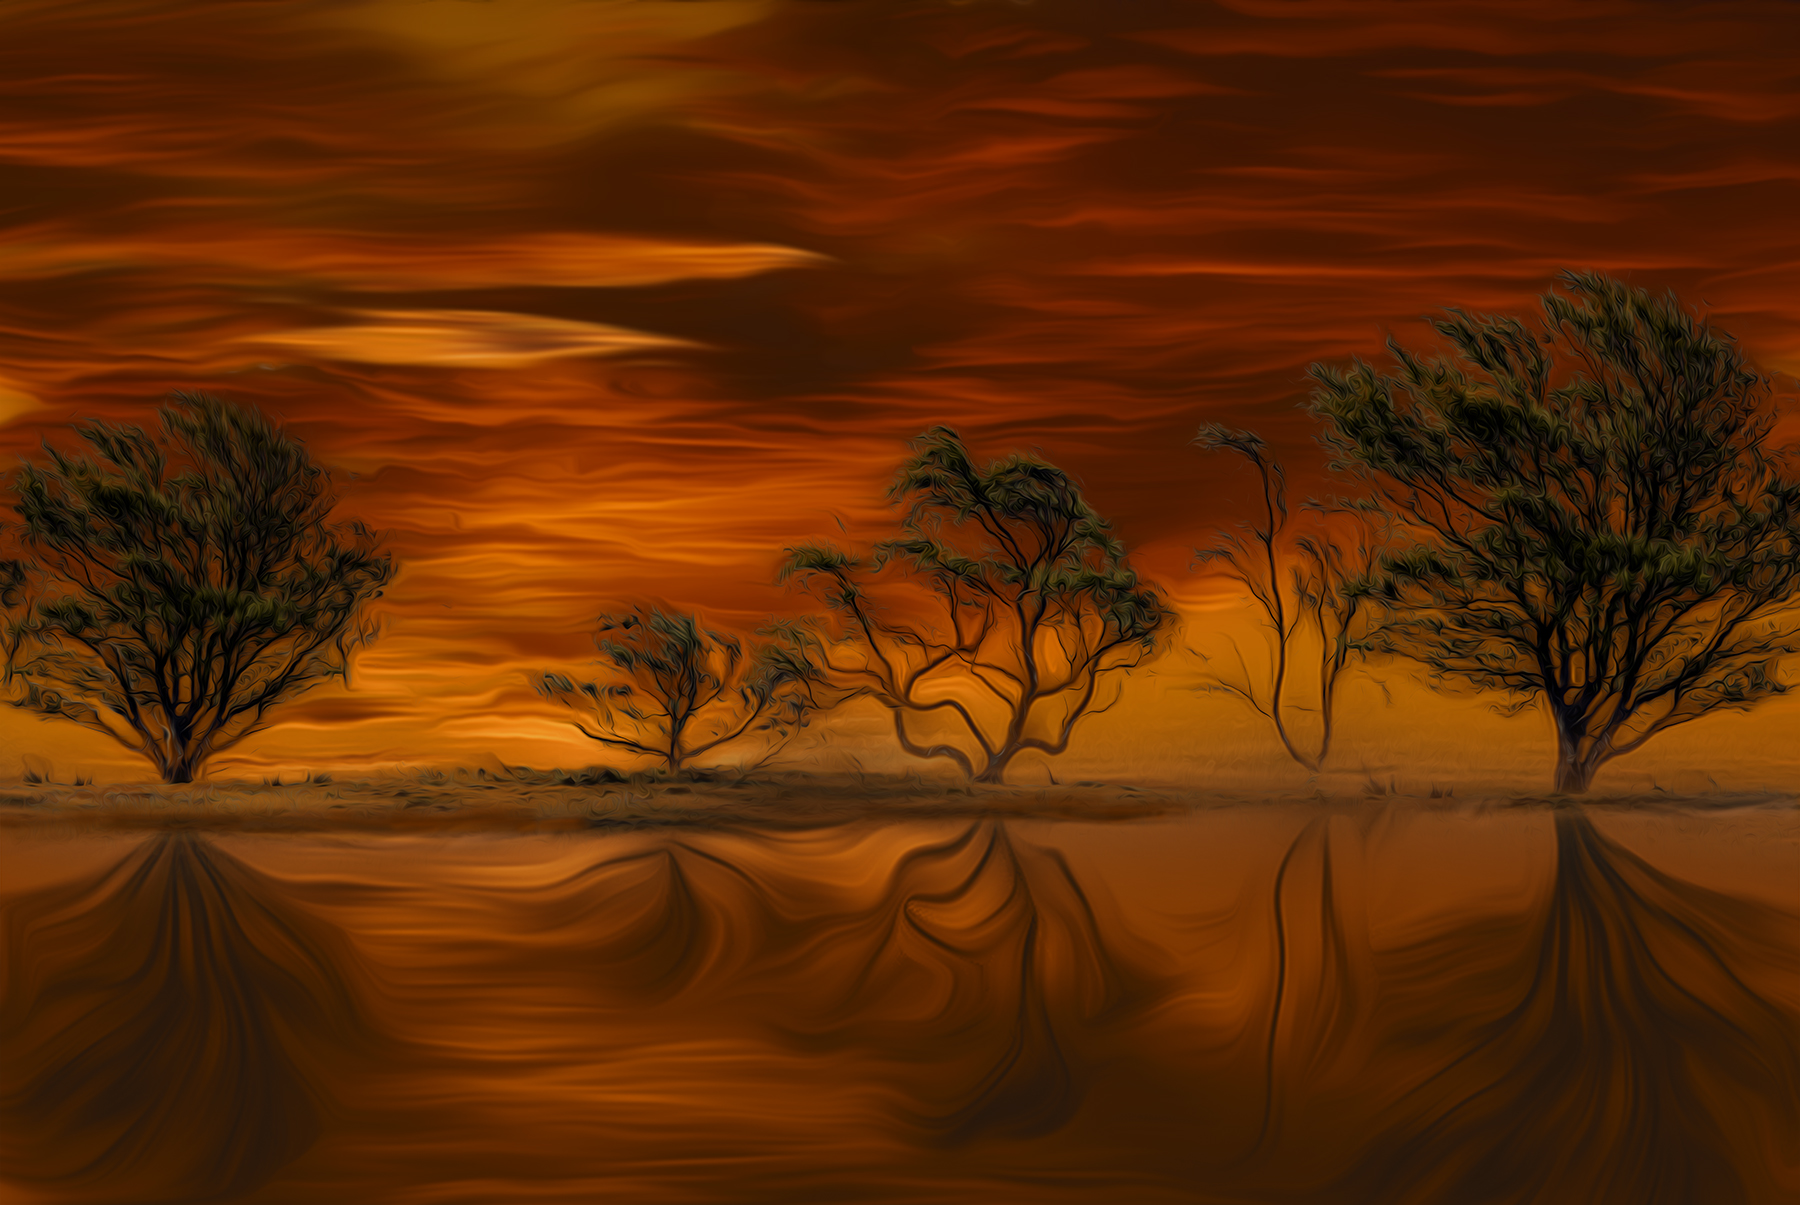 Orange Sunset By Martin Raskovsky - Digitally Manipulated Photography - (Various Sizes & Prices)